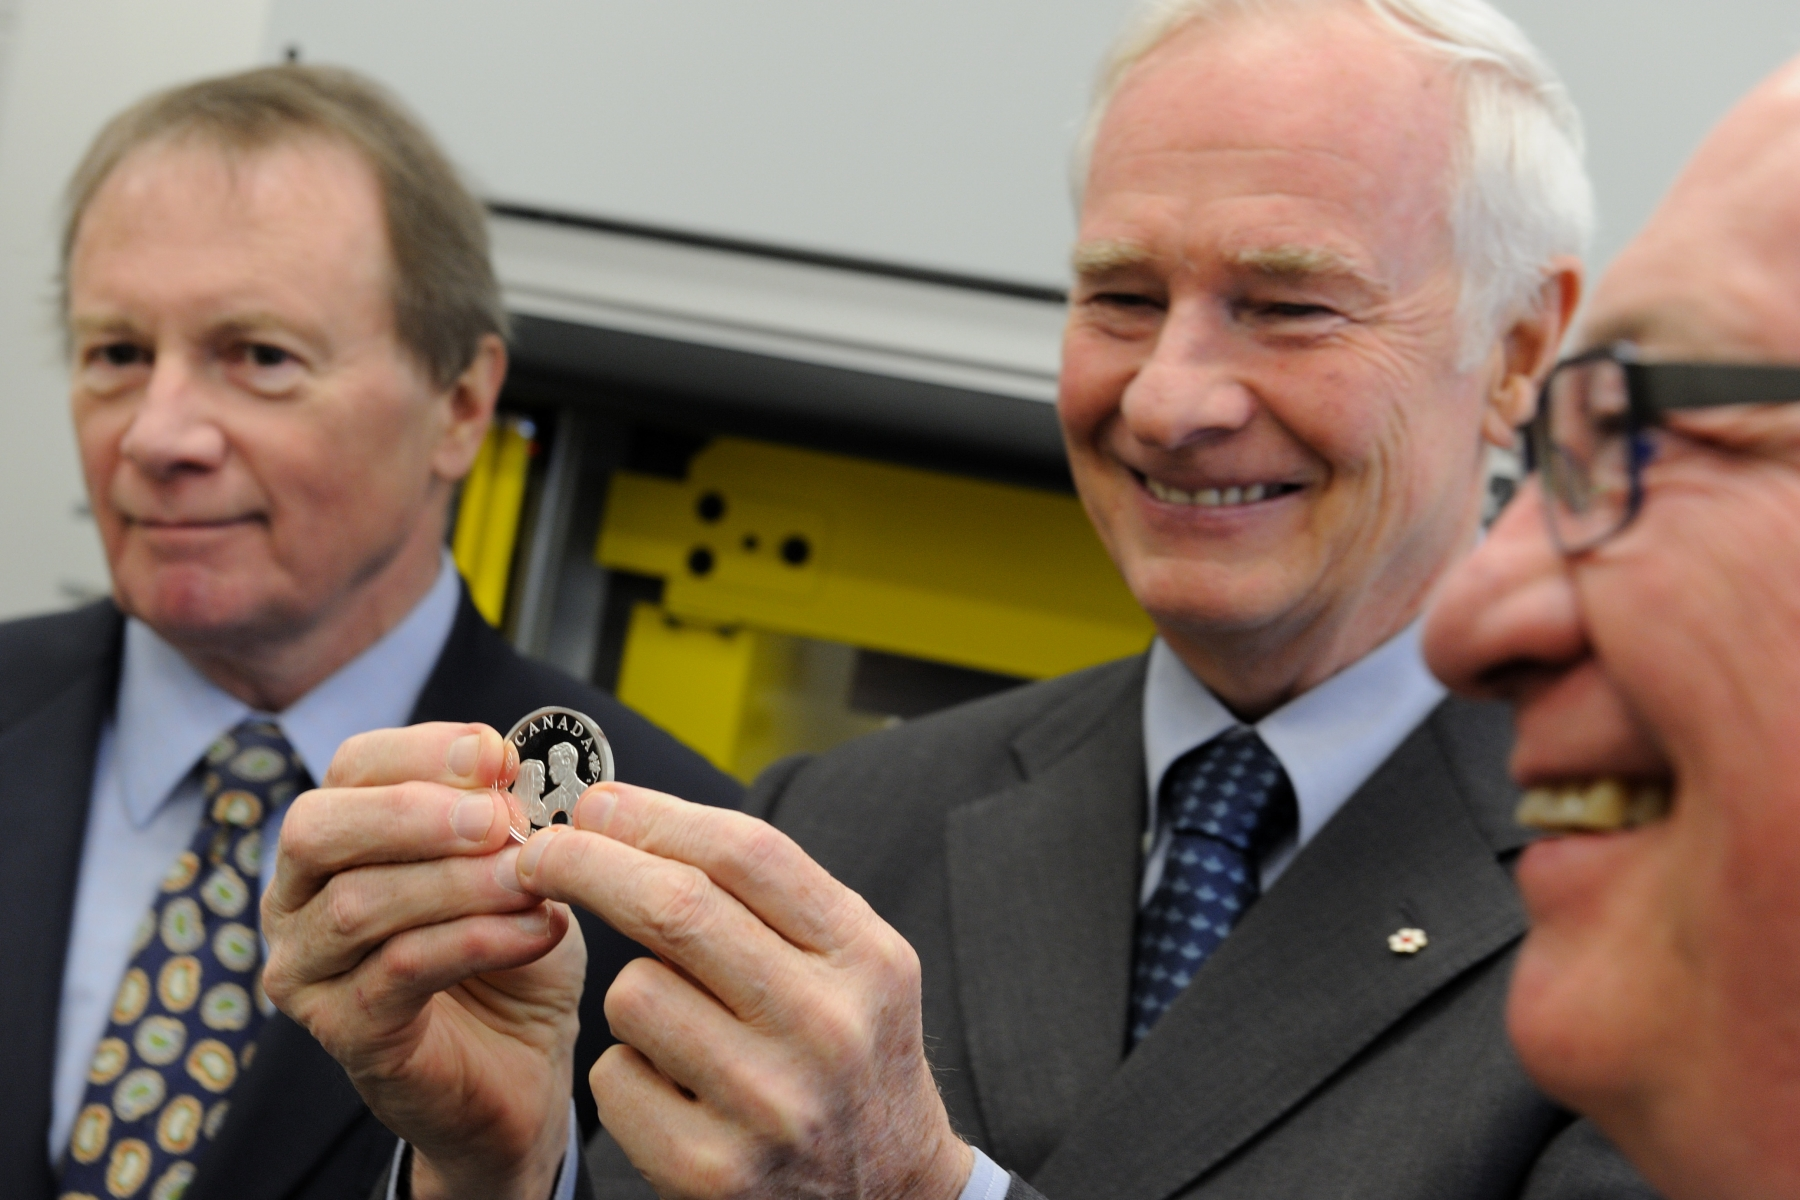 His Excellency proudly showed to media the coin in the presence of Mr. Love (right) and President and CEO of the Royal Canadian Mint Mr. Ian Bennett (left).